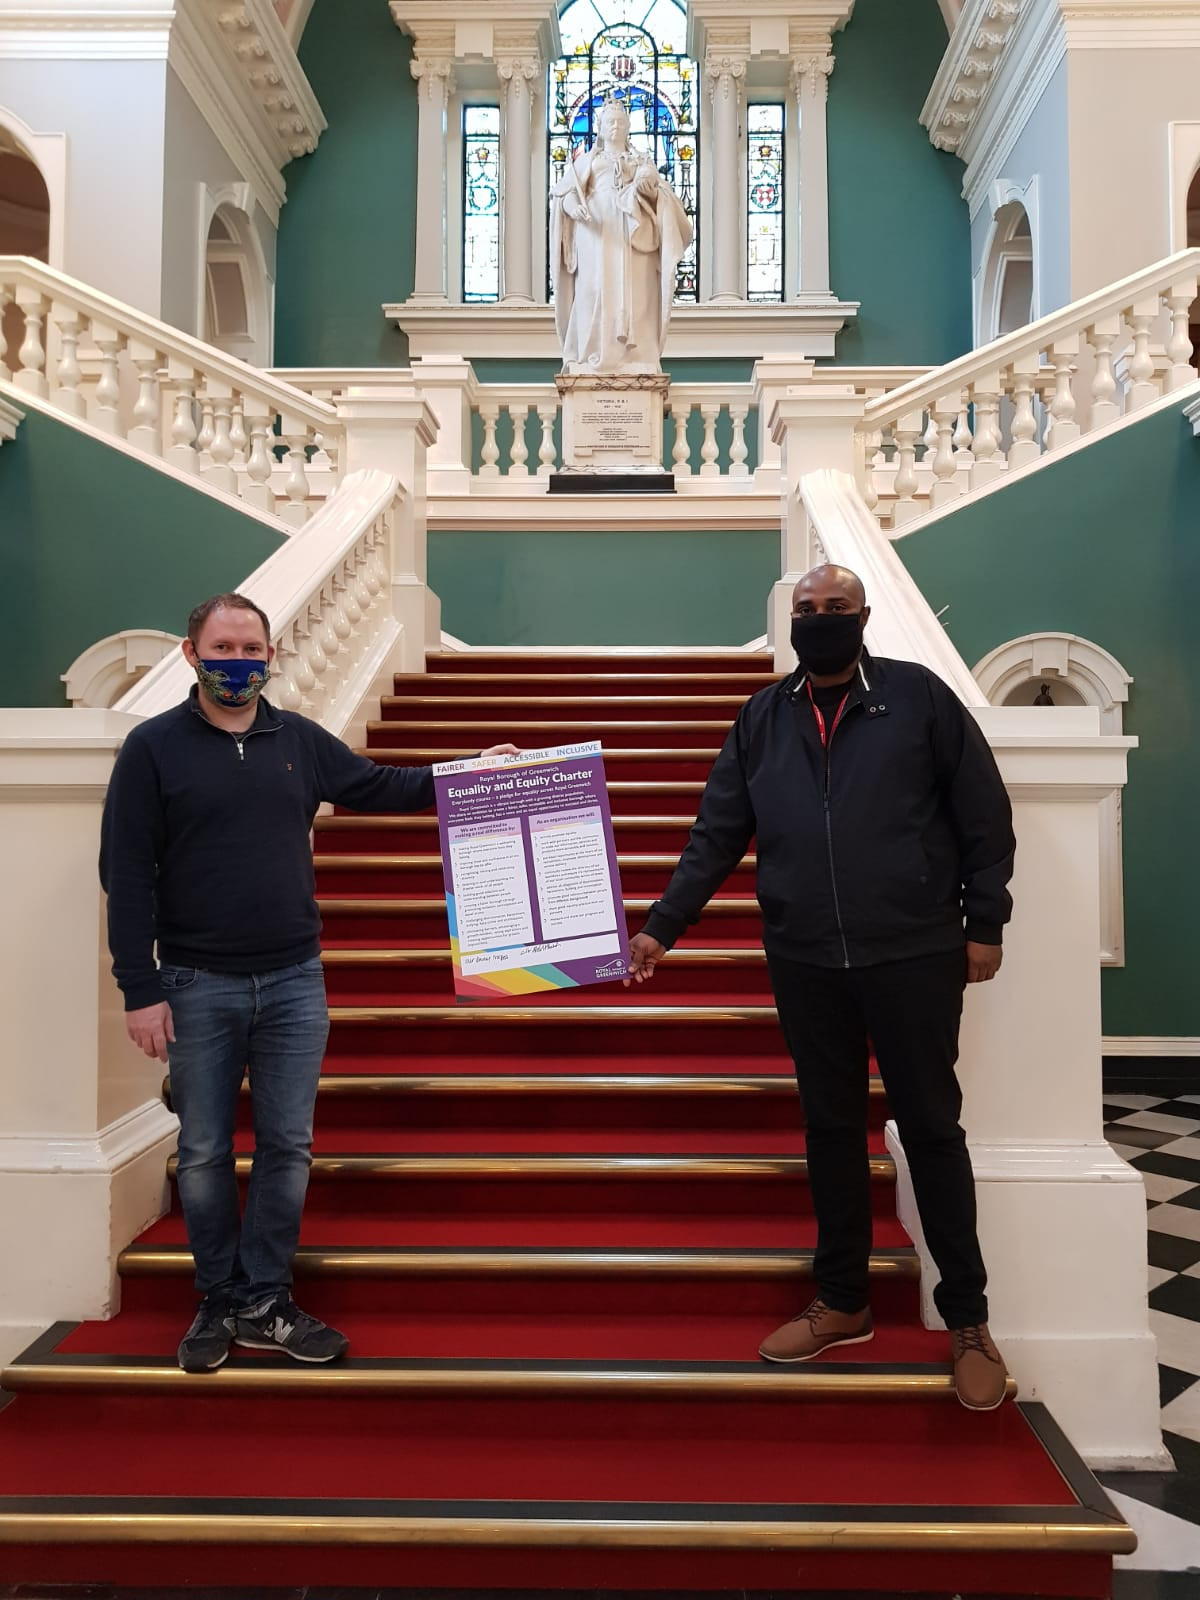 Cllr Danny Thorpe and Cllr Adel Khaireh, launch the borough's first Equality and Equity Charter - on stairs of Town Hall holding up the Charter.